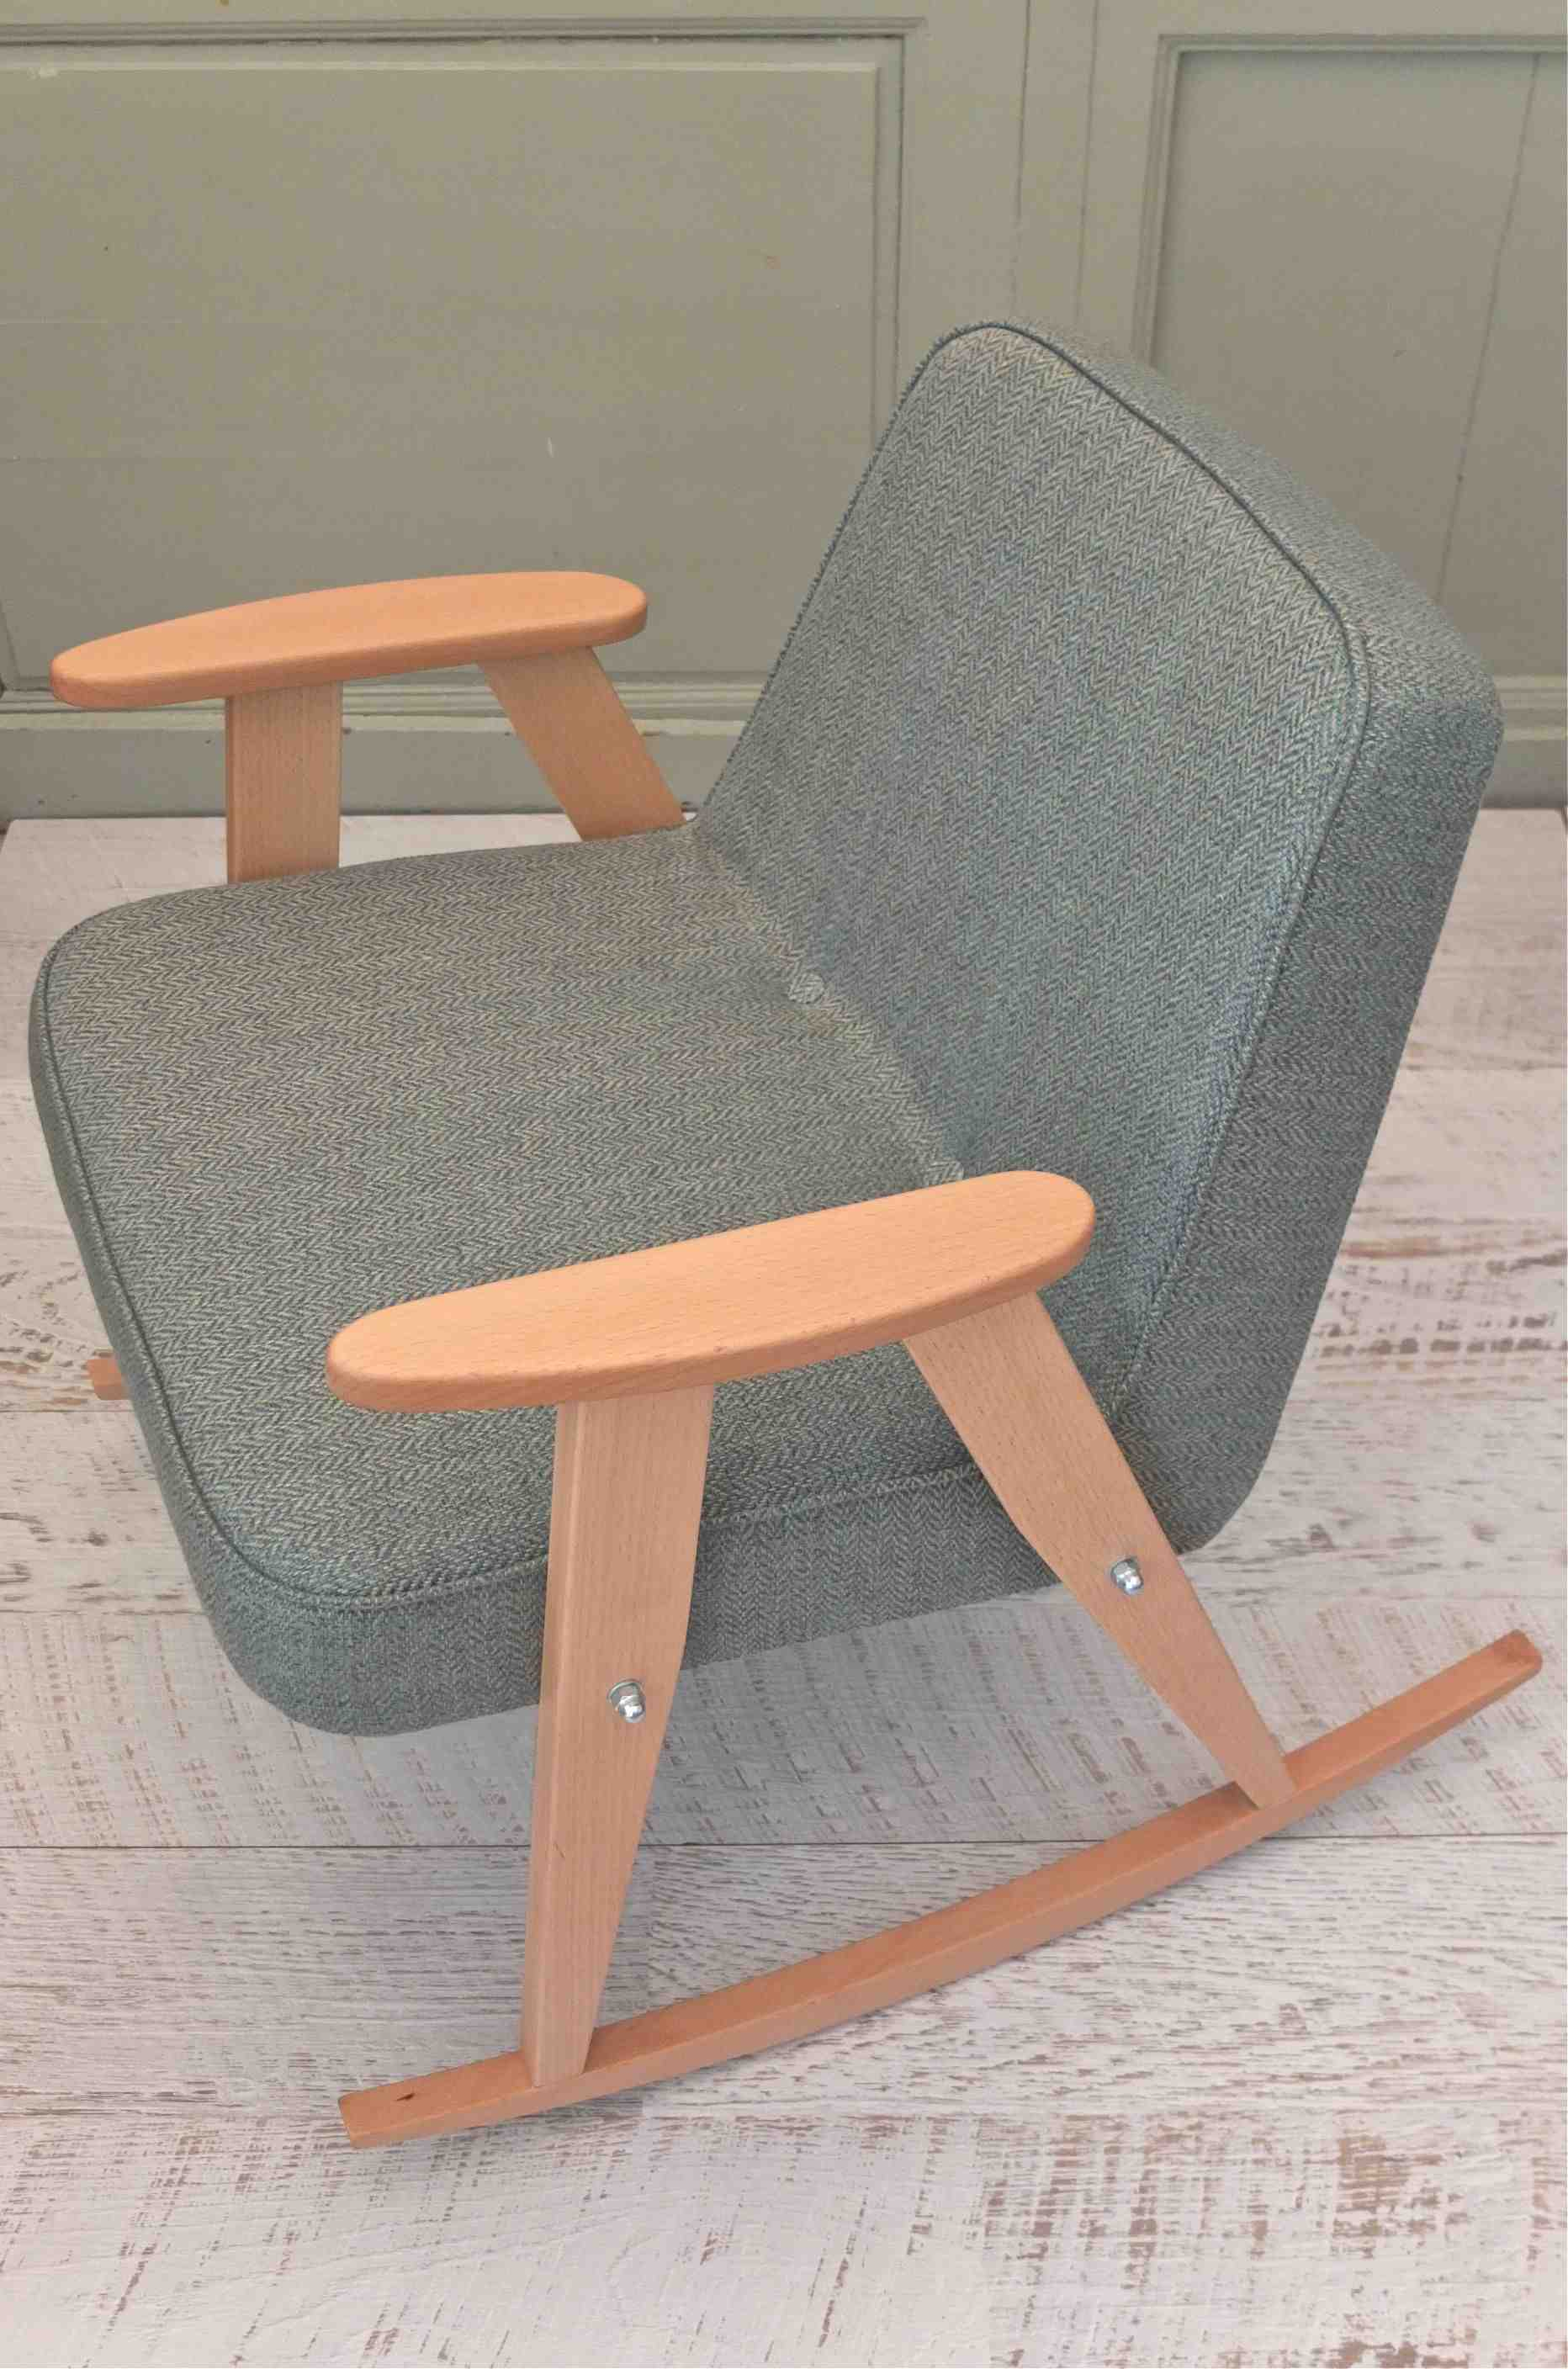 design polonais 366 concept rocking chair 366 jozef Chierowski 9